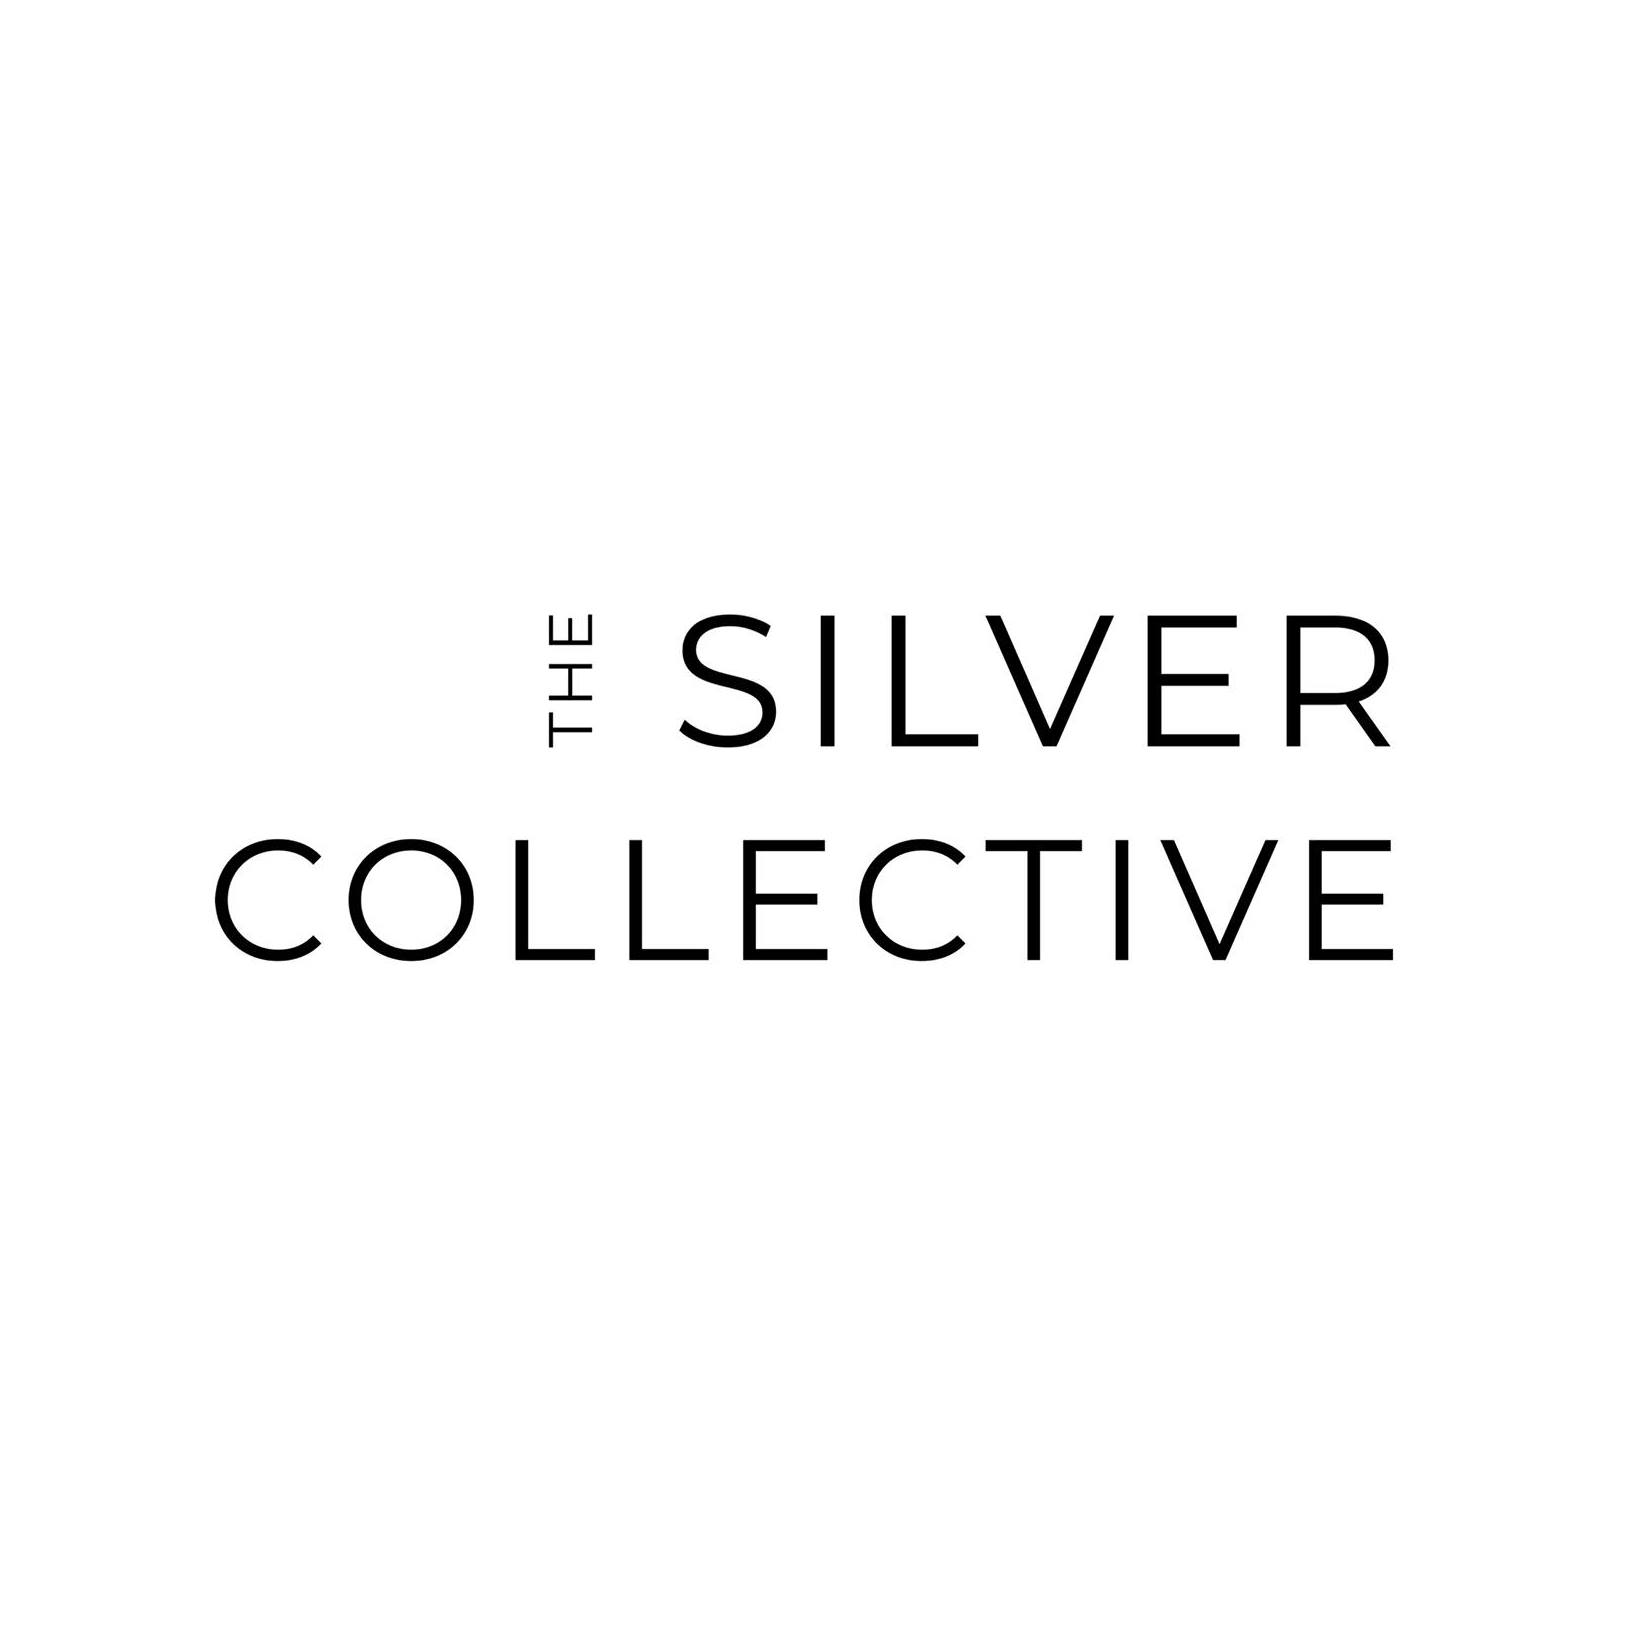 Business logo of The Silver Collective